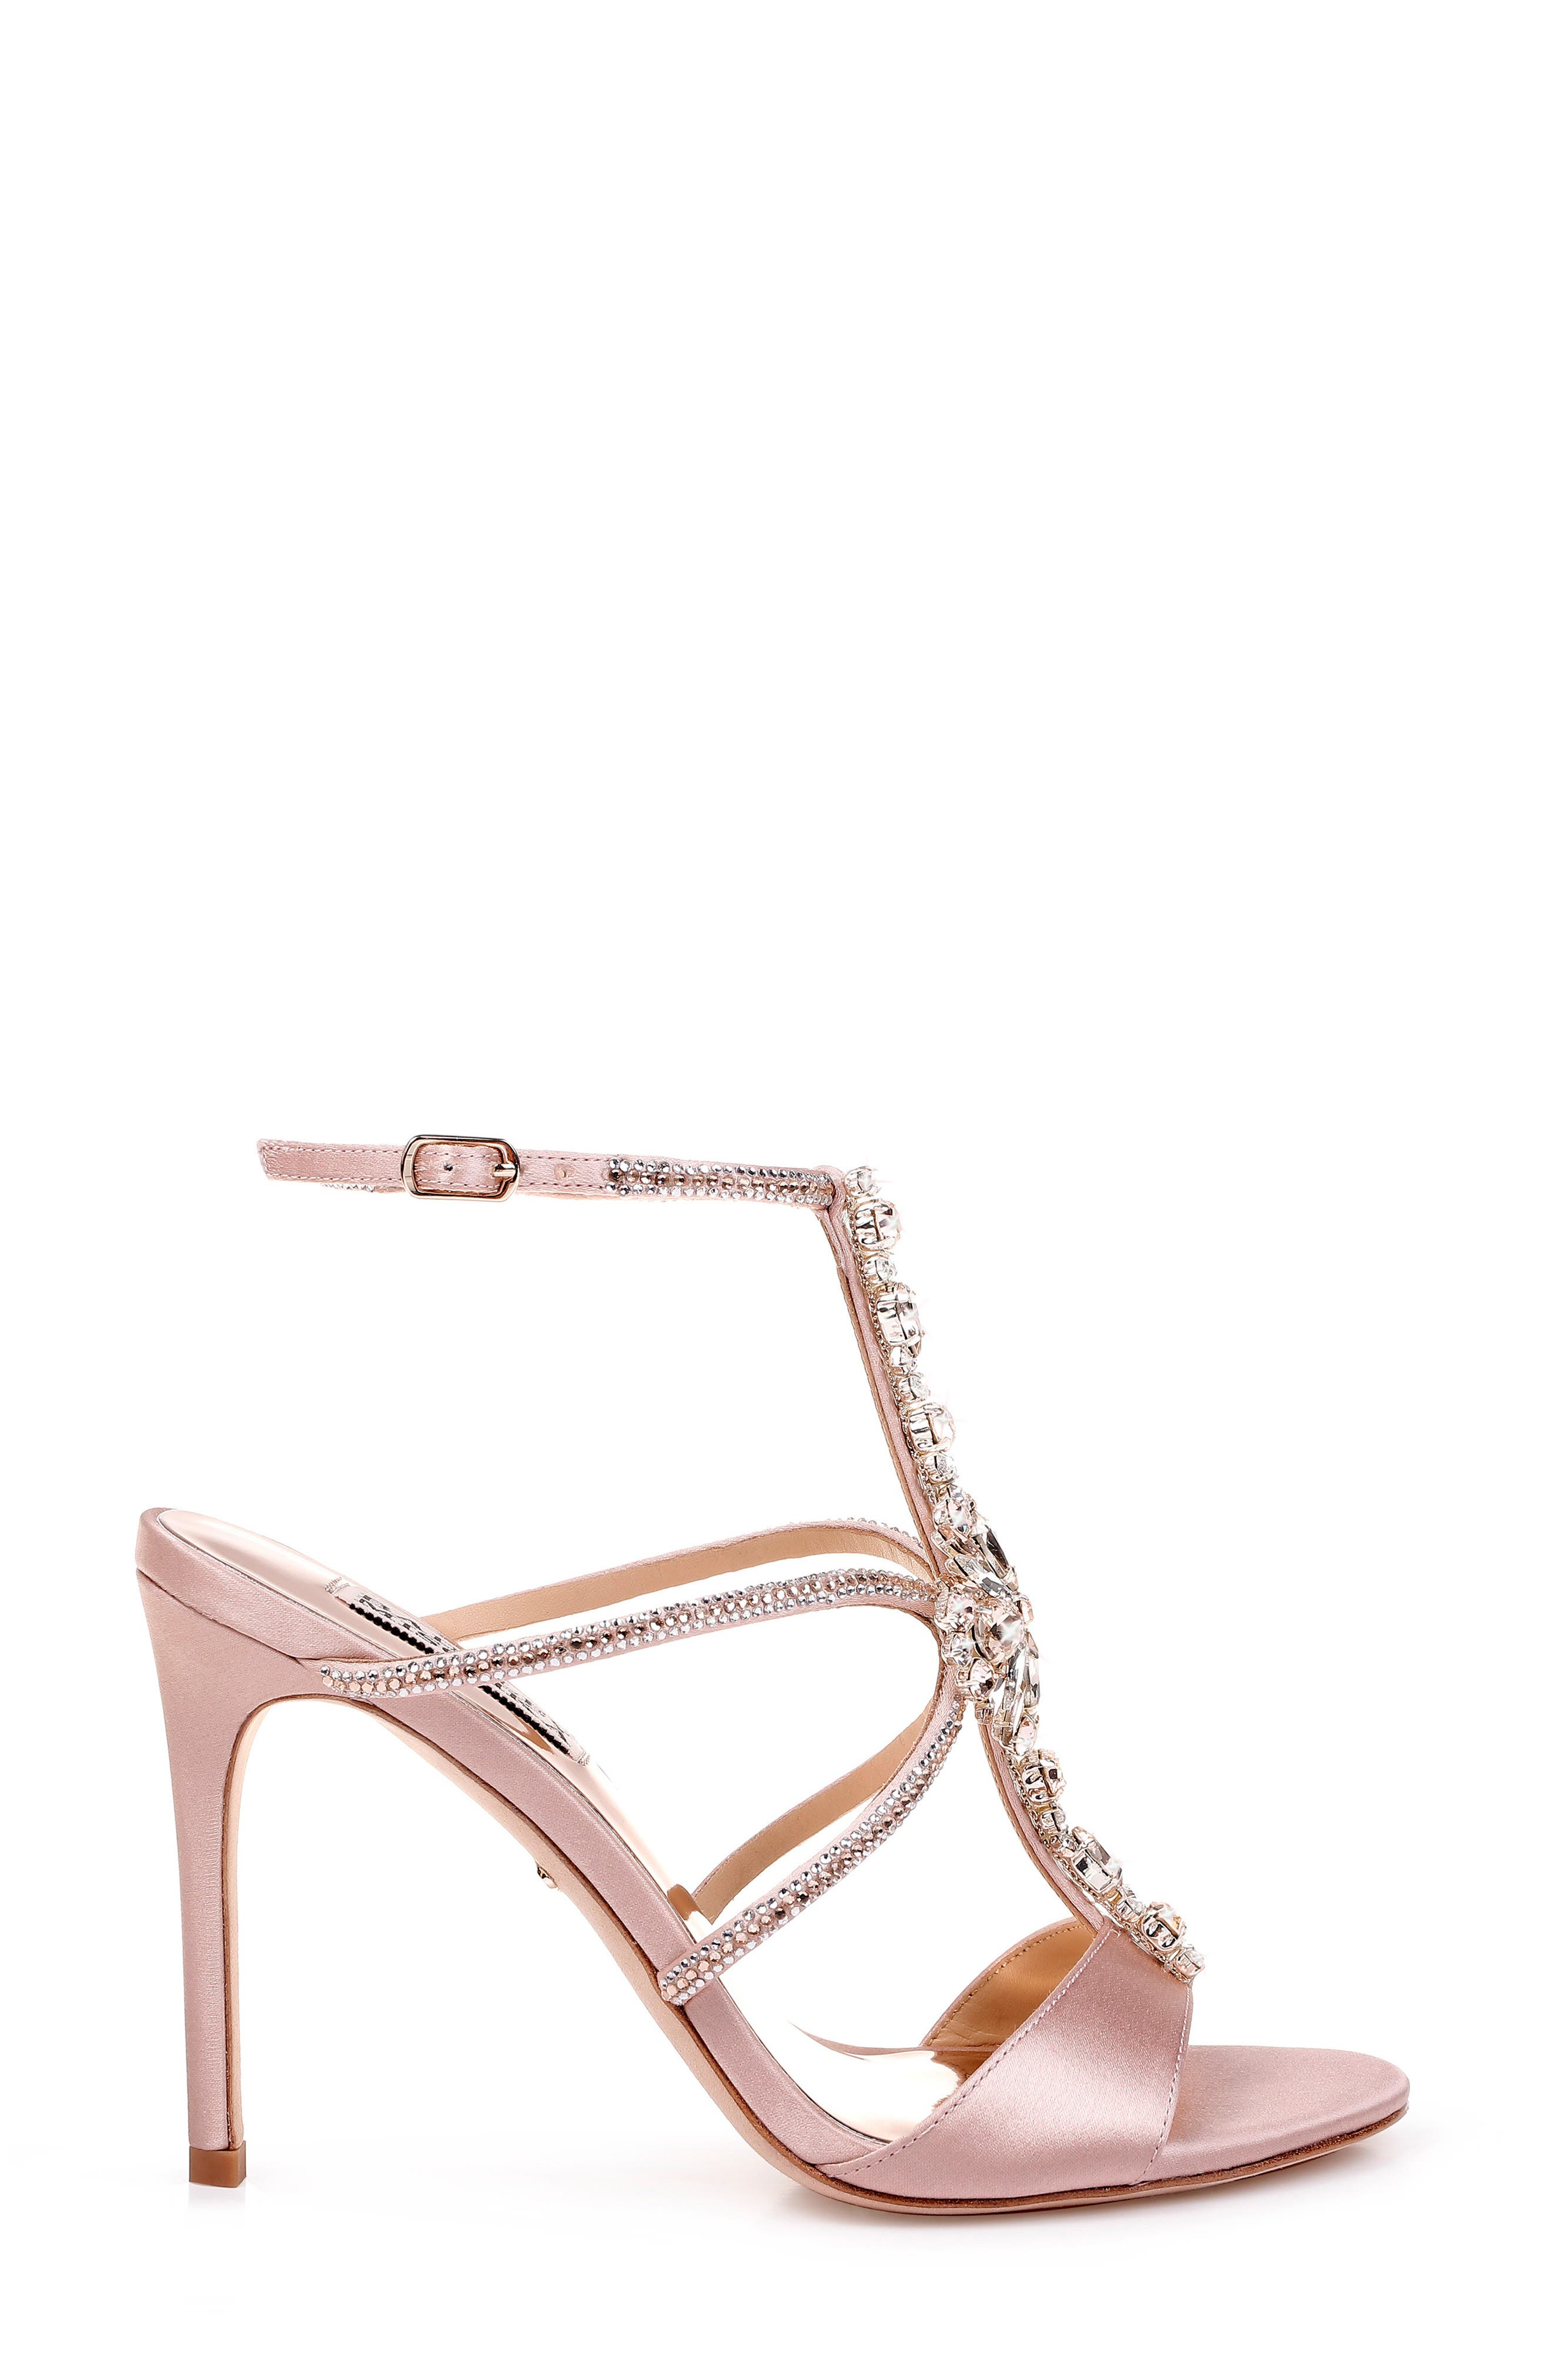 BADGLEY MISCHKA COLLECTION, Badgley Mischka Faye Ankle Strap Sandal, Alternate thumbnail 3, color, SOFT BLUSH SATIN